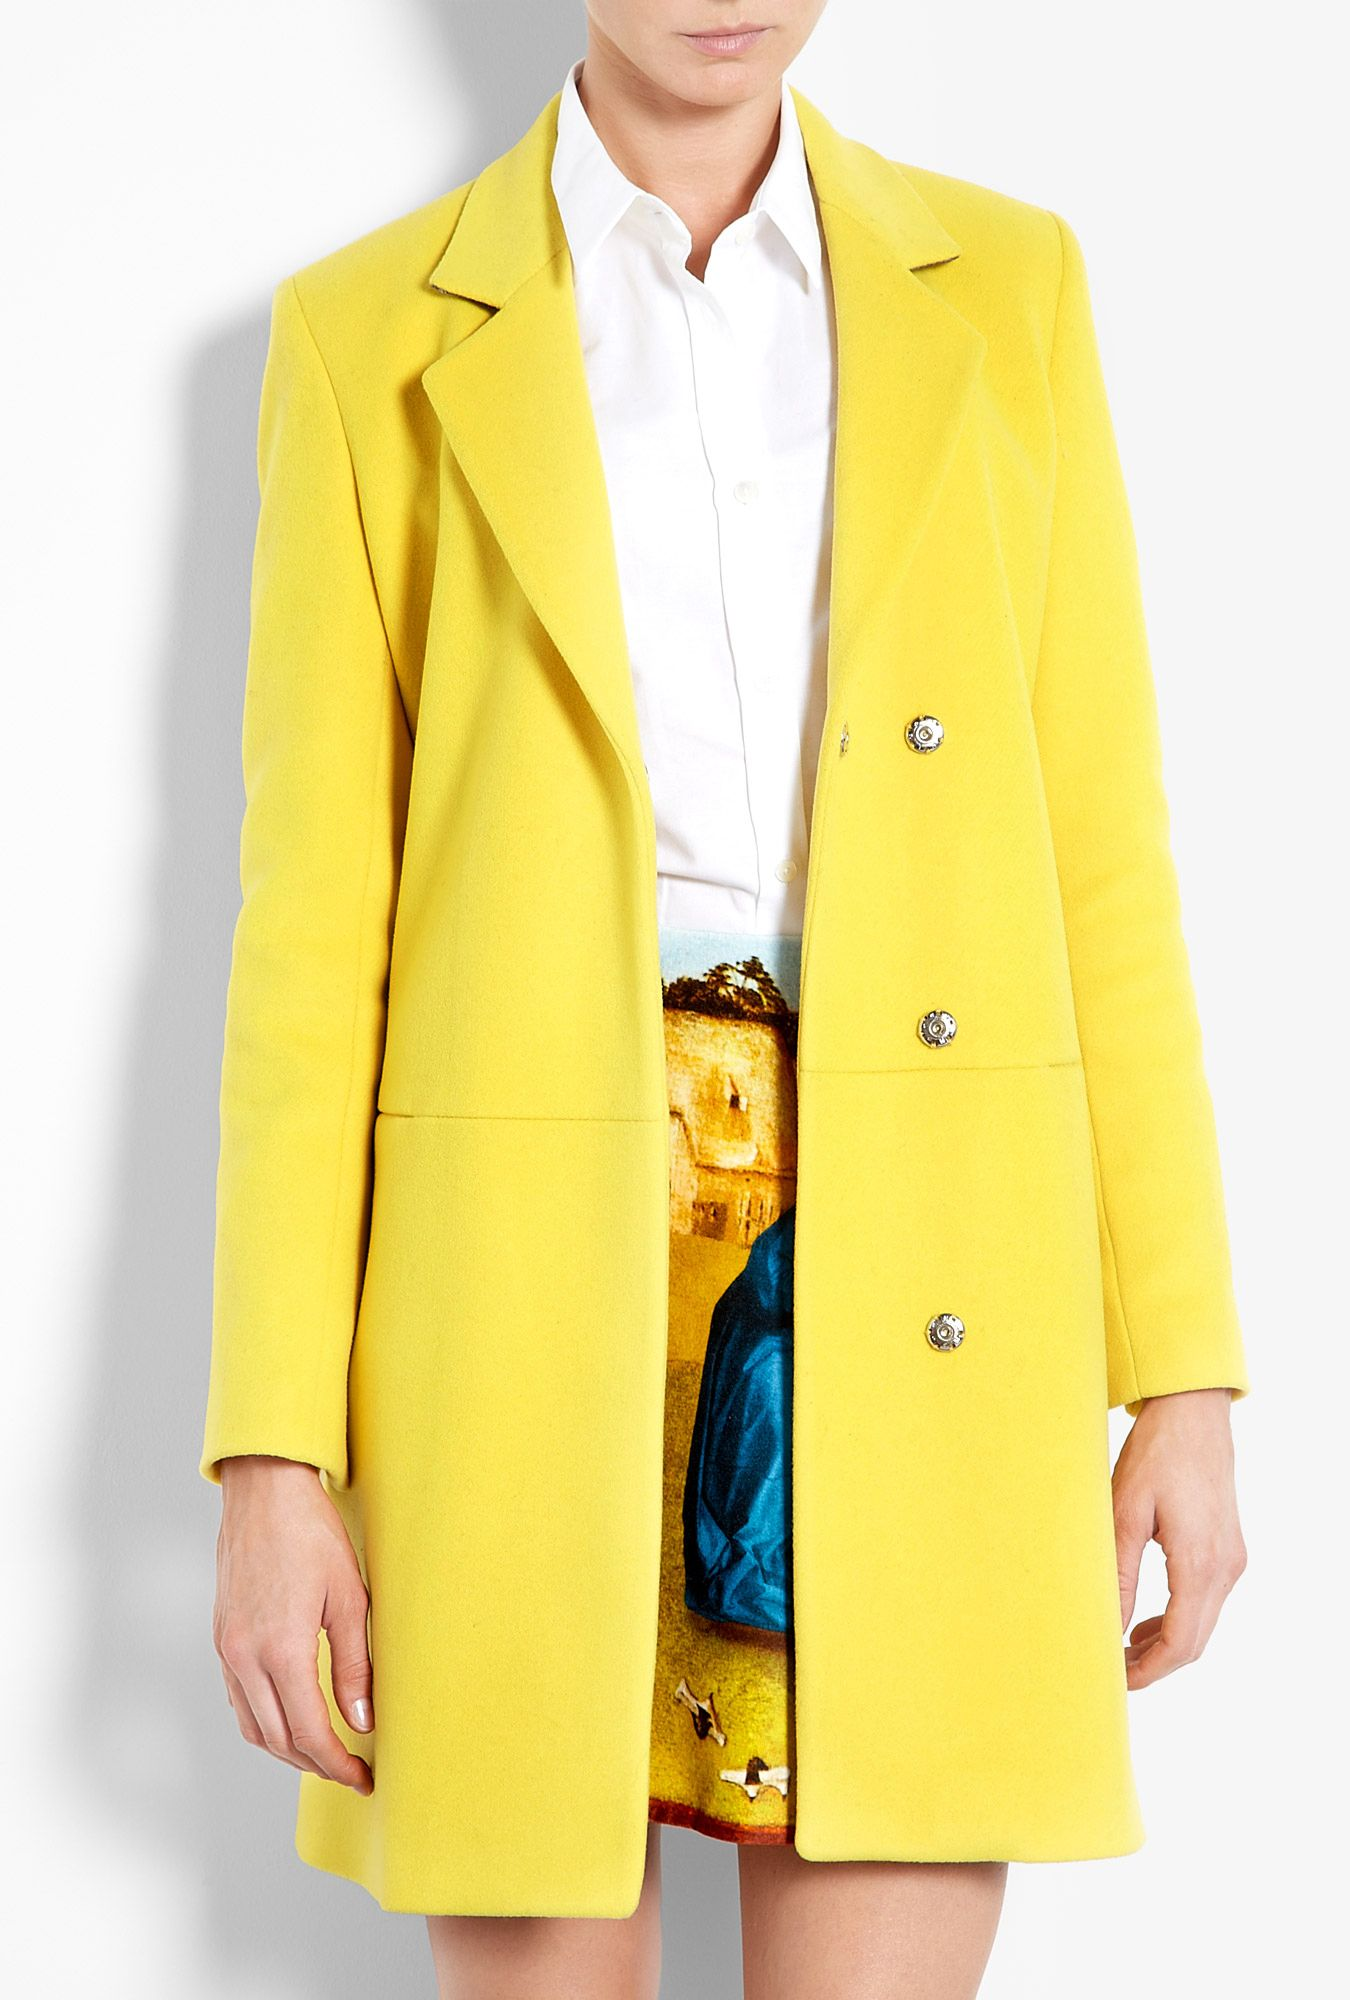 MSGM   Yellow Wool Coat by MSGM   Msgm, Wool coats and Wardrobes